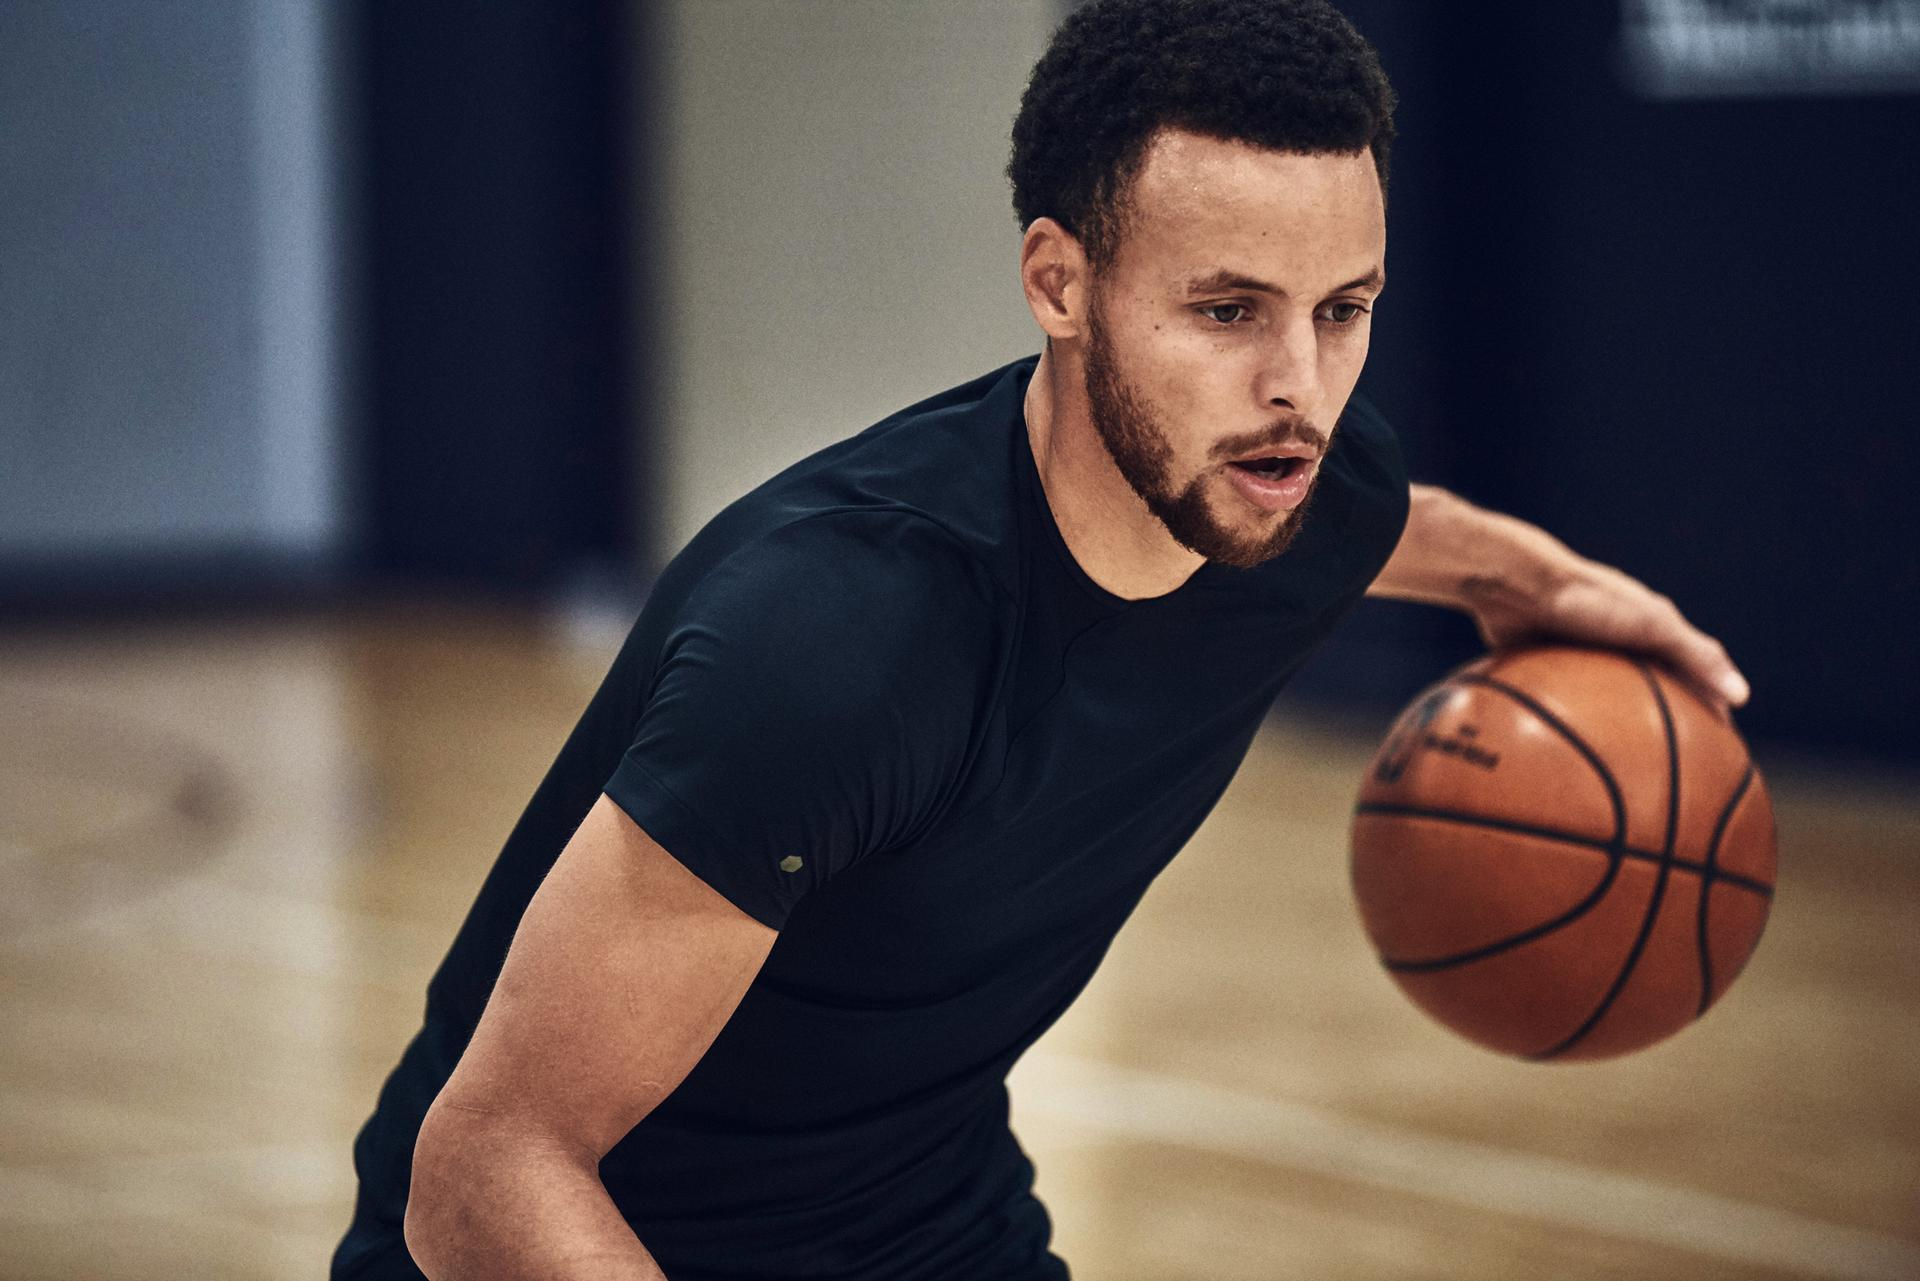 Steph Curry spielt in der Halle Basketball